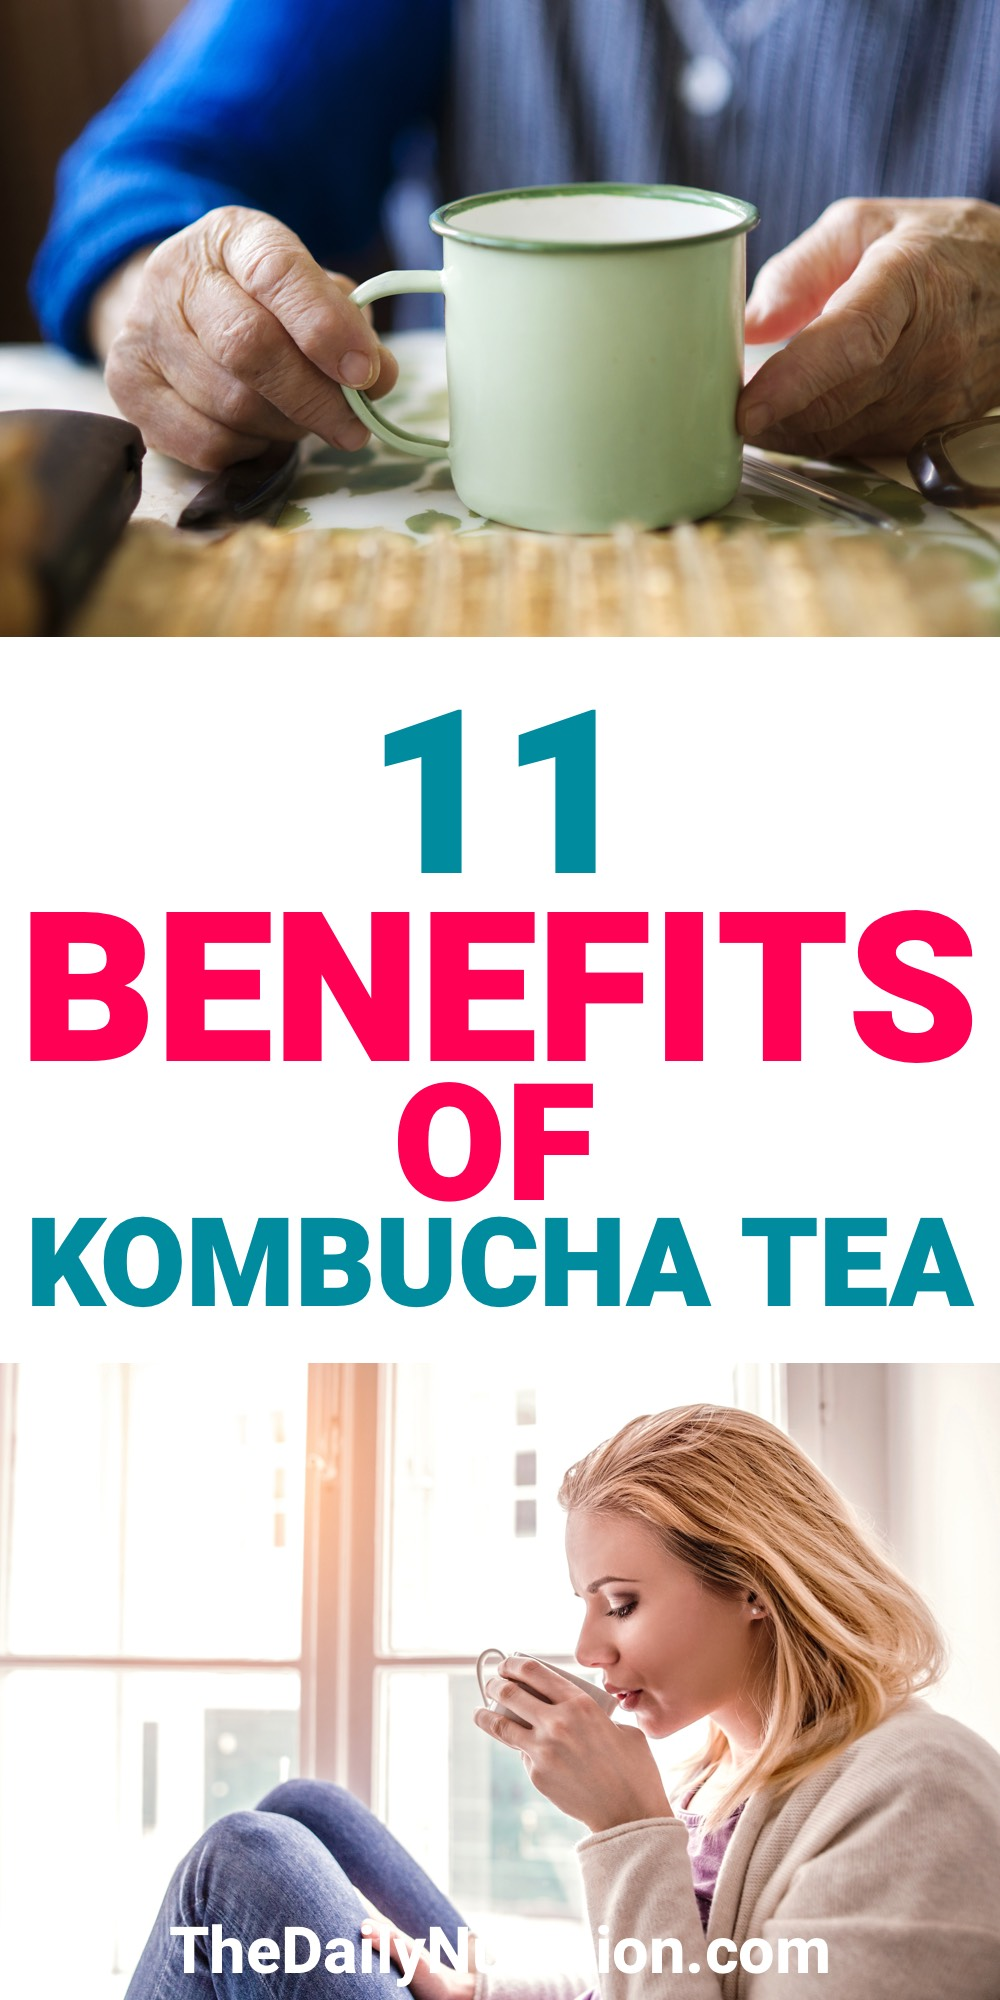 Kombucha tea is something that you need in your life. Here are 11 kombucha benefits you need to take advantage of.